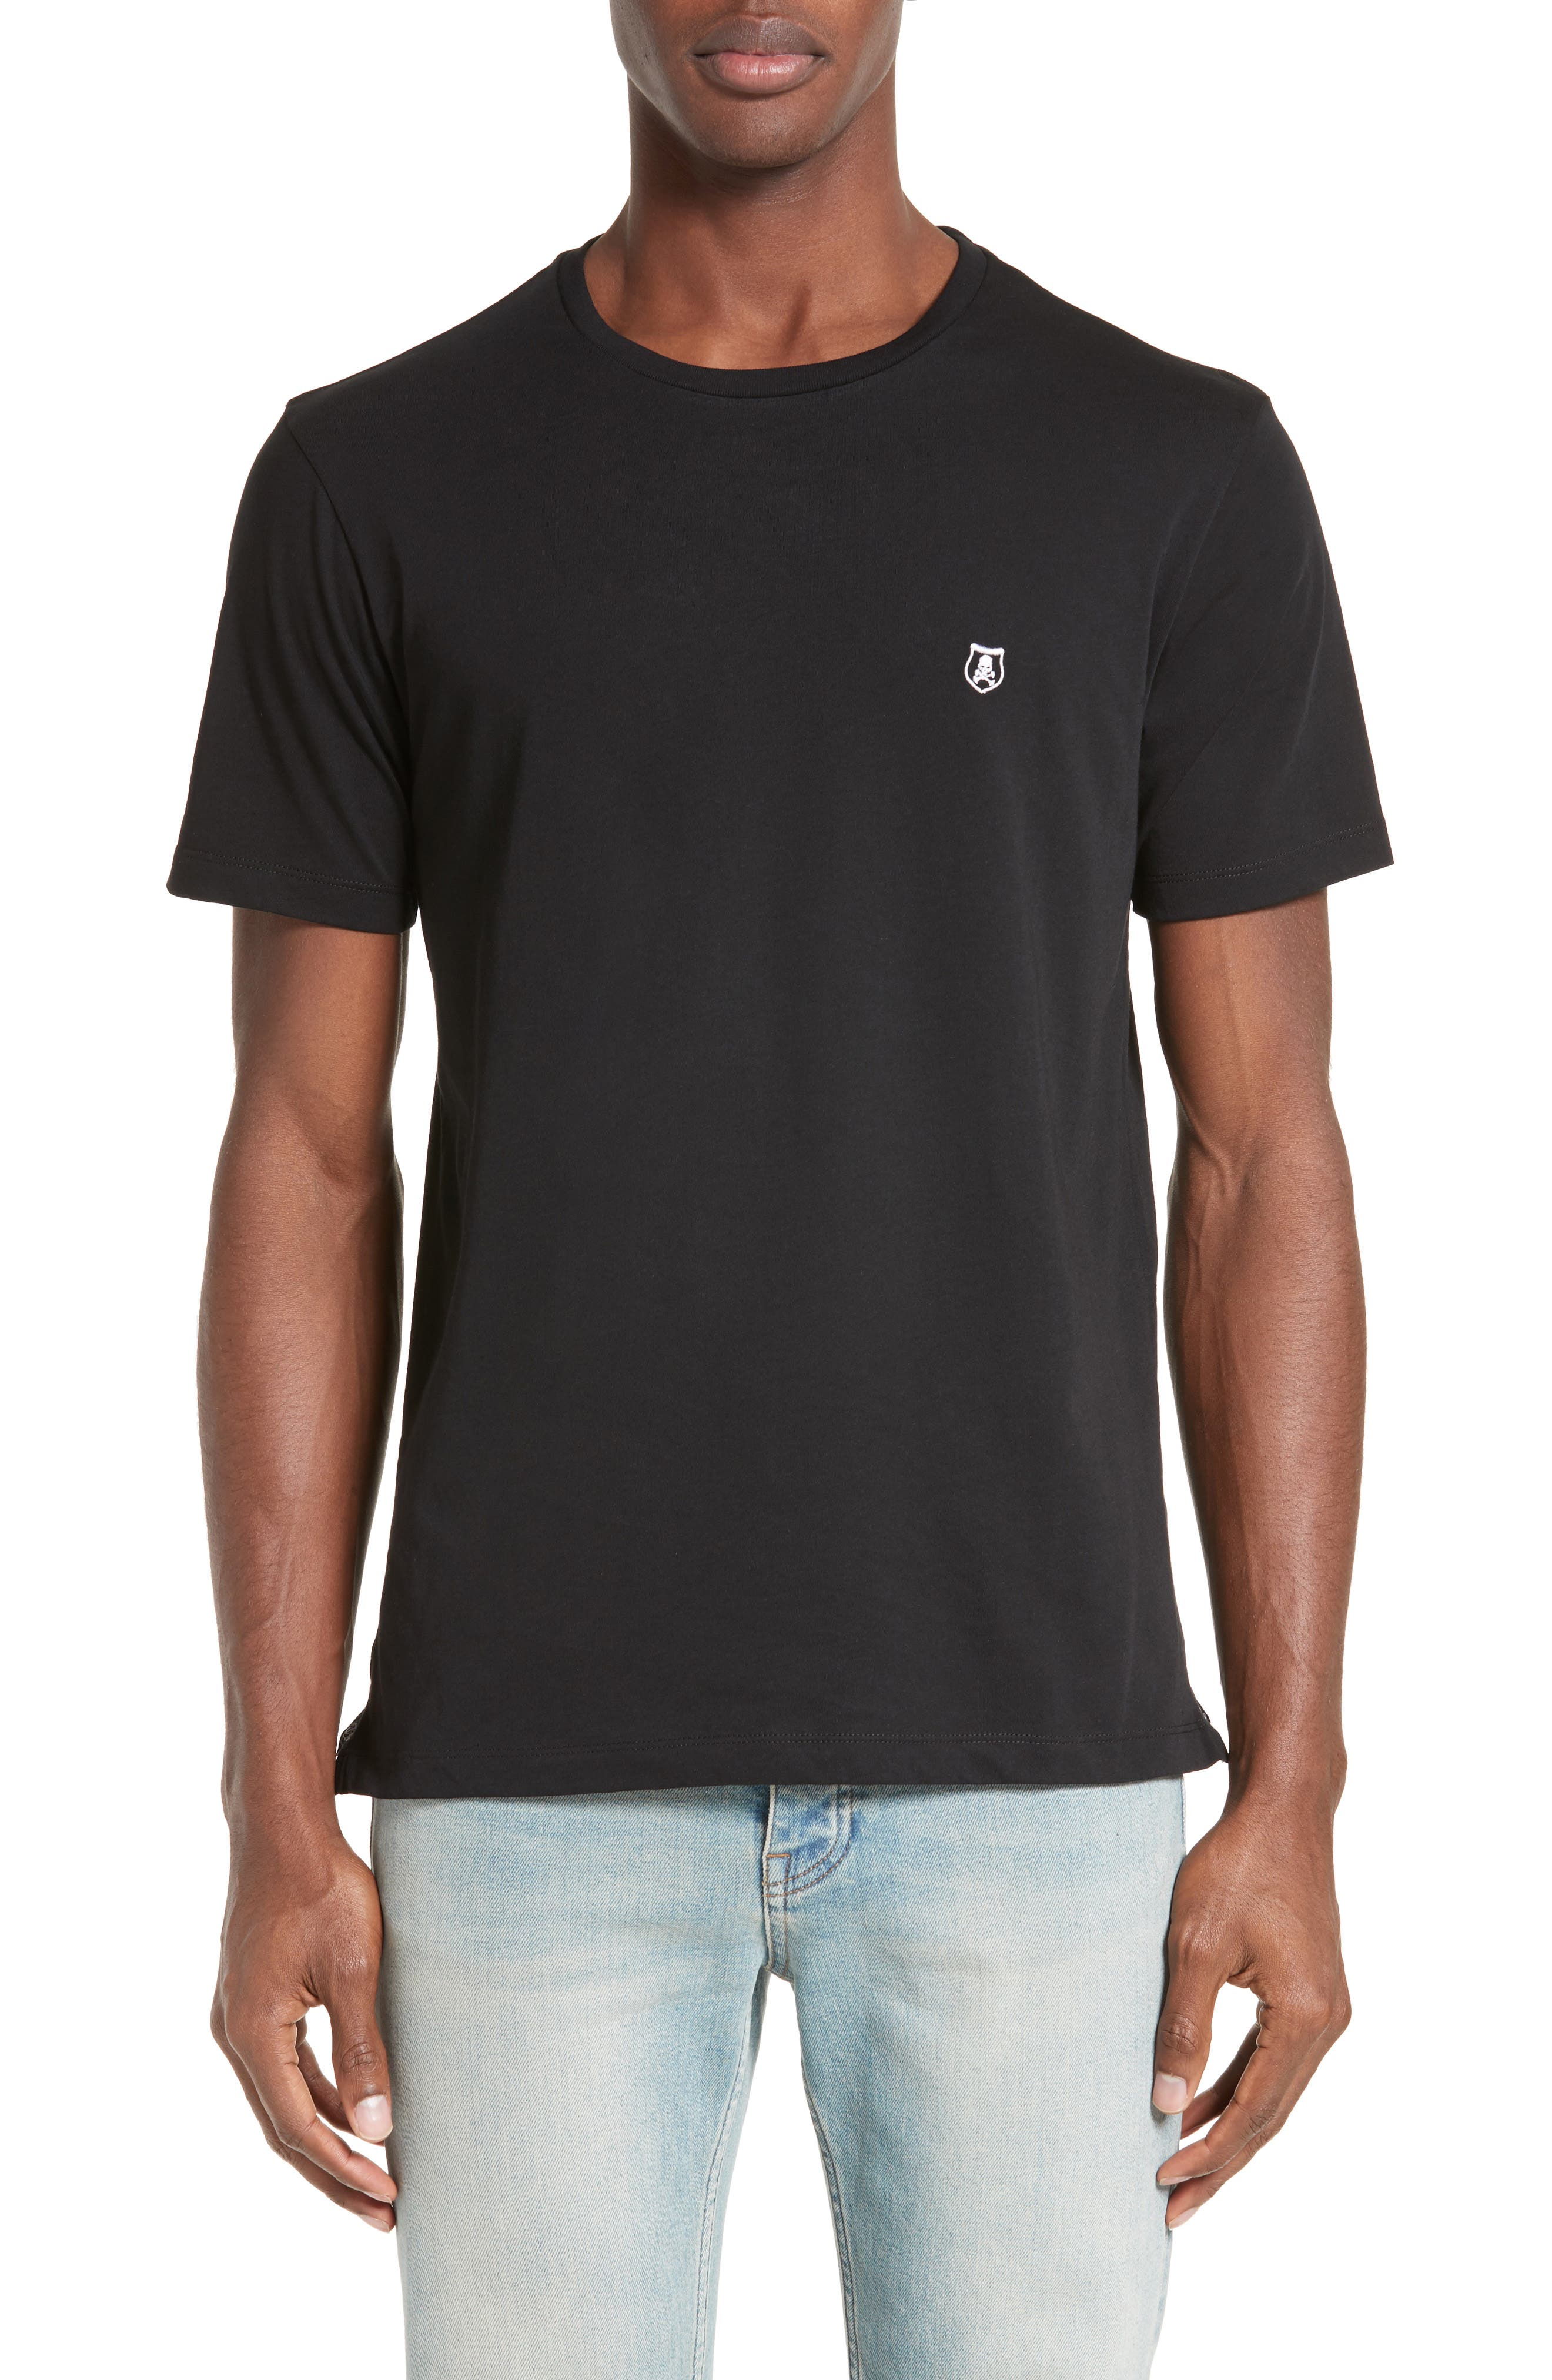 Main Image - The Kooples Embroidered T-Shirt